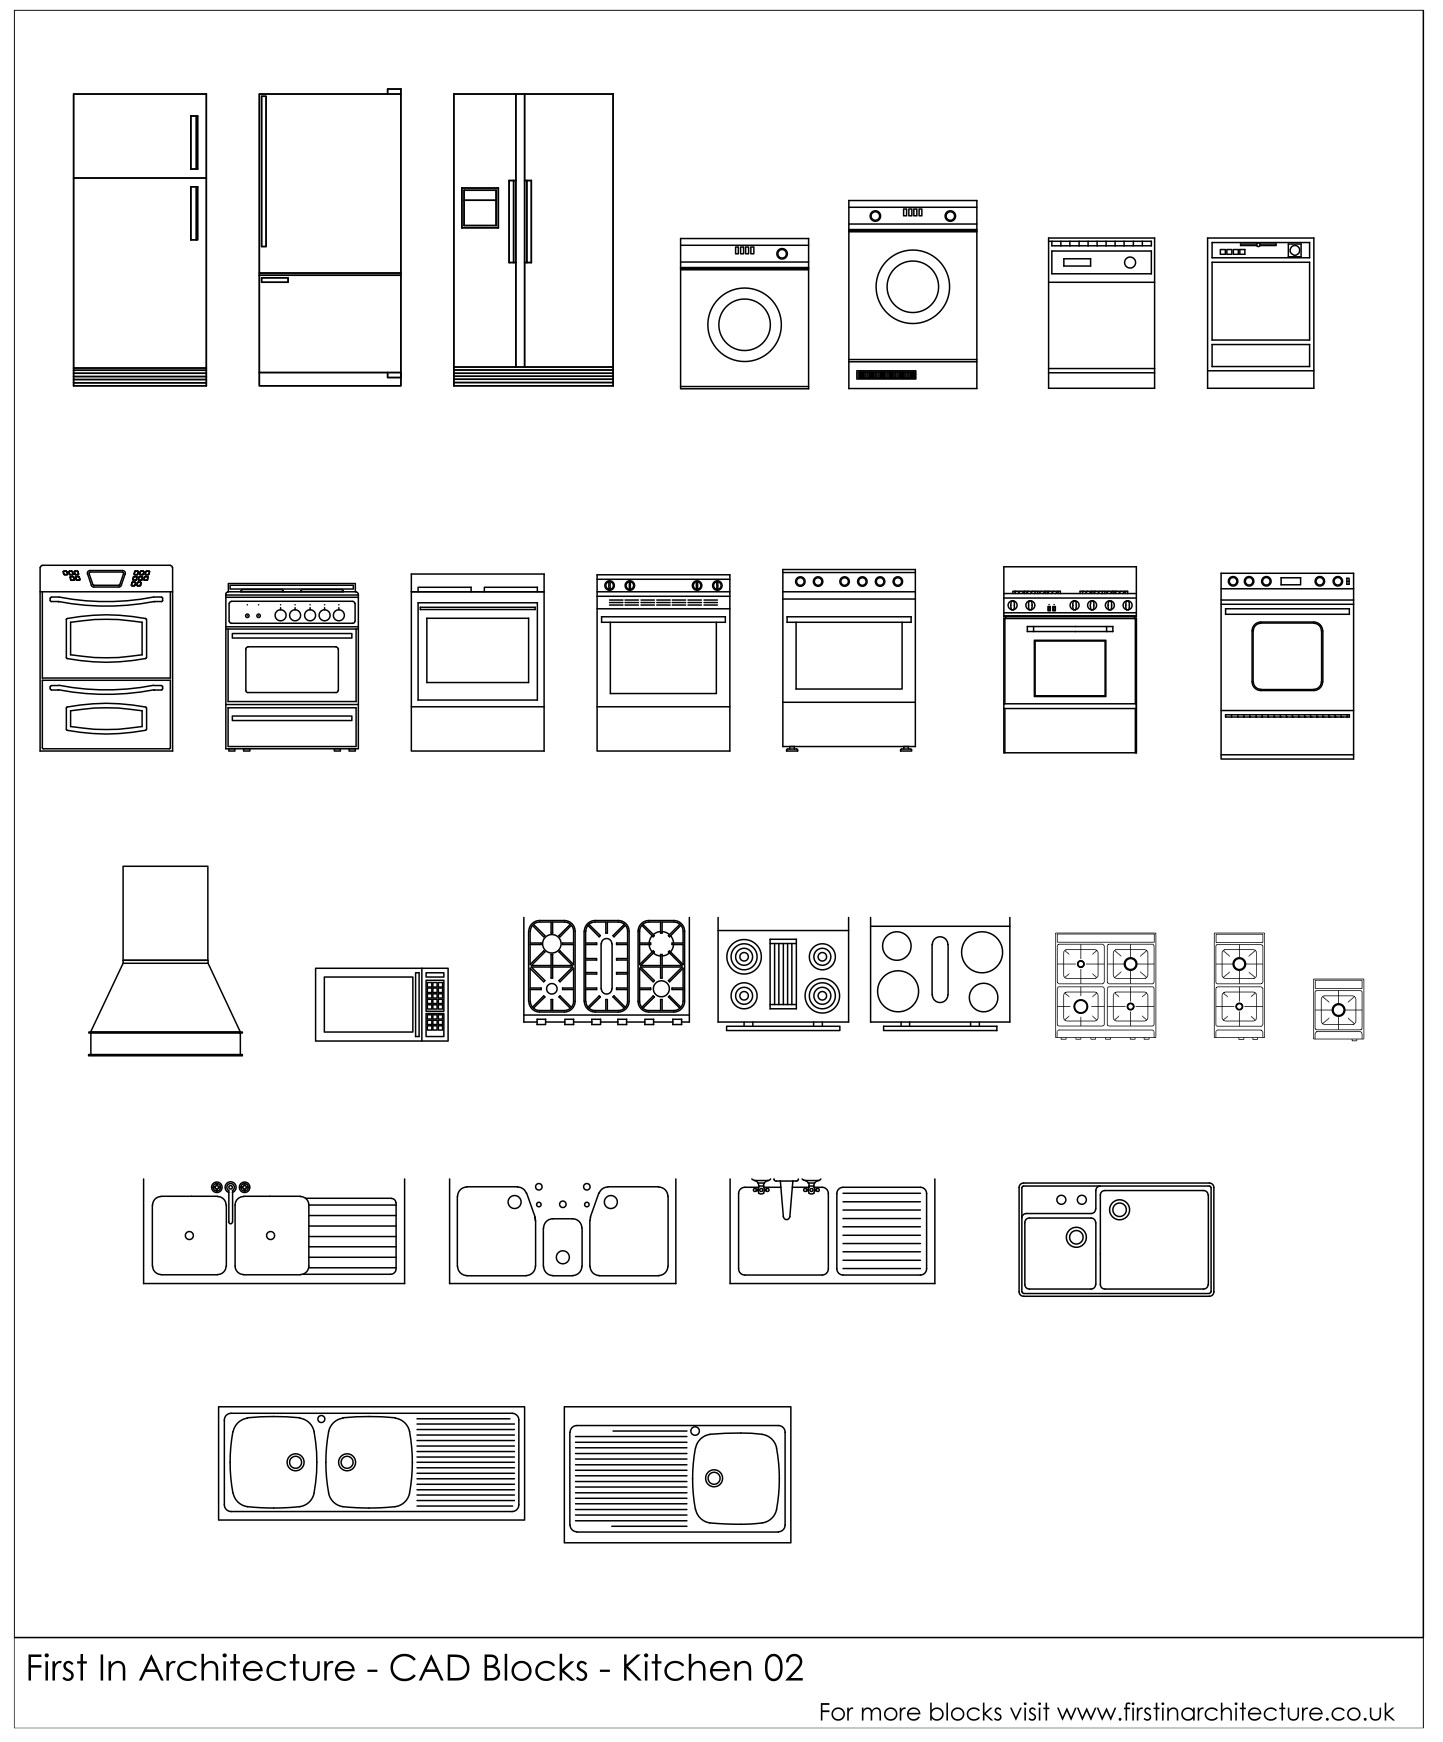 Restaurant Kitchen Layout Autocad: Free CAD Blocks - Kitchen Appliances 02